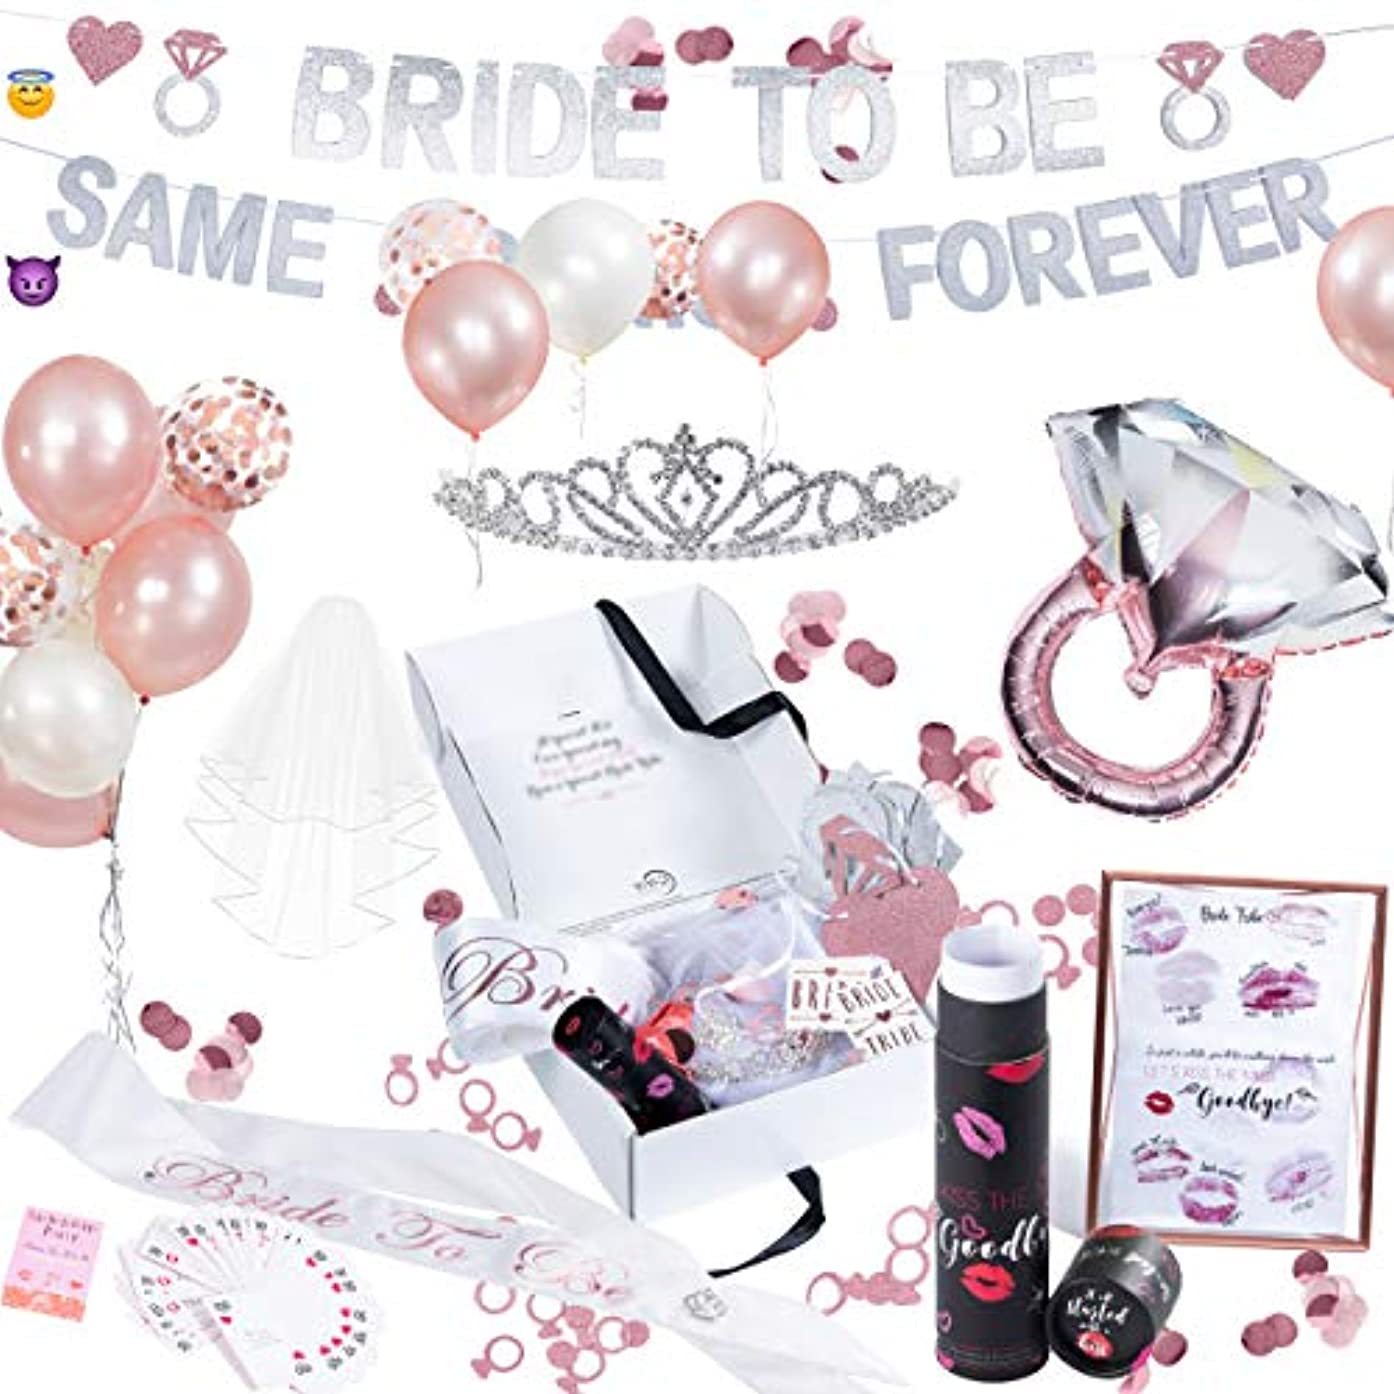 ViViD FunLab Bachelorette Party Decorations Kit | Bridal Shower Supplies | Bride to Be Sash, Veil, Tiara, Bride Tribe Tattoos | Rose Gold & Confetti Balloons, Glitter Banner, Bachelorette Party Games